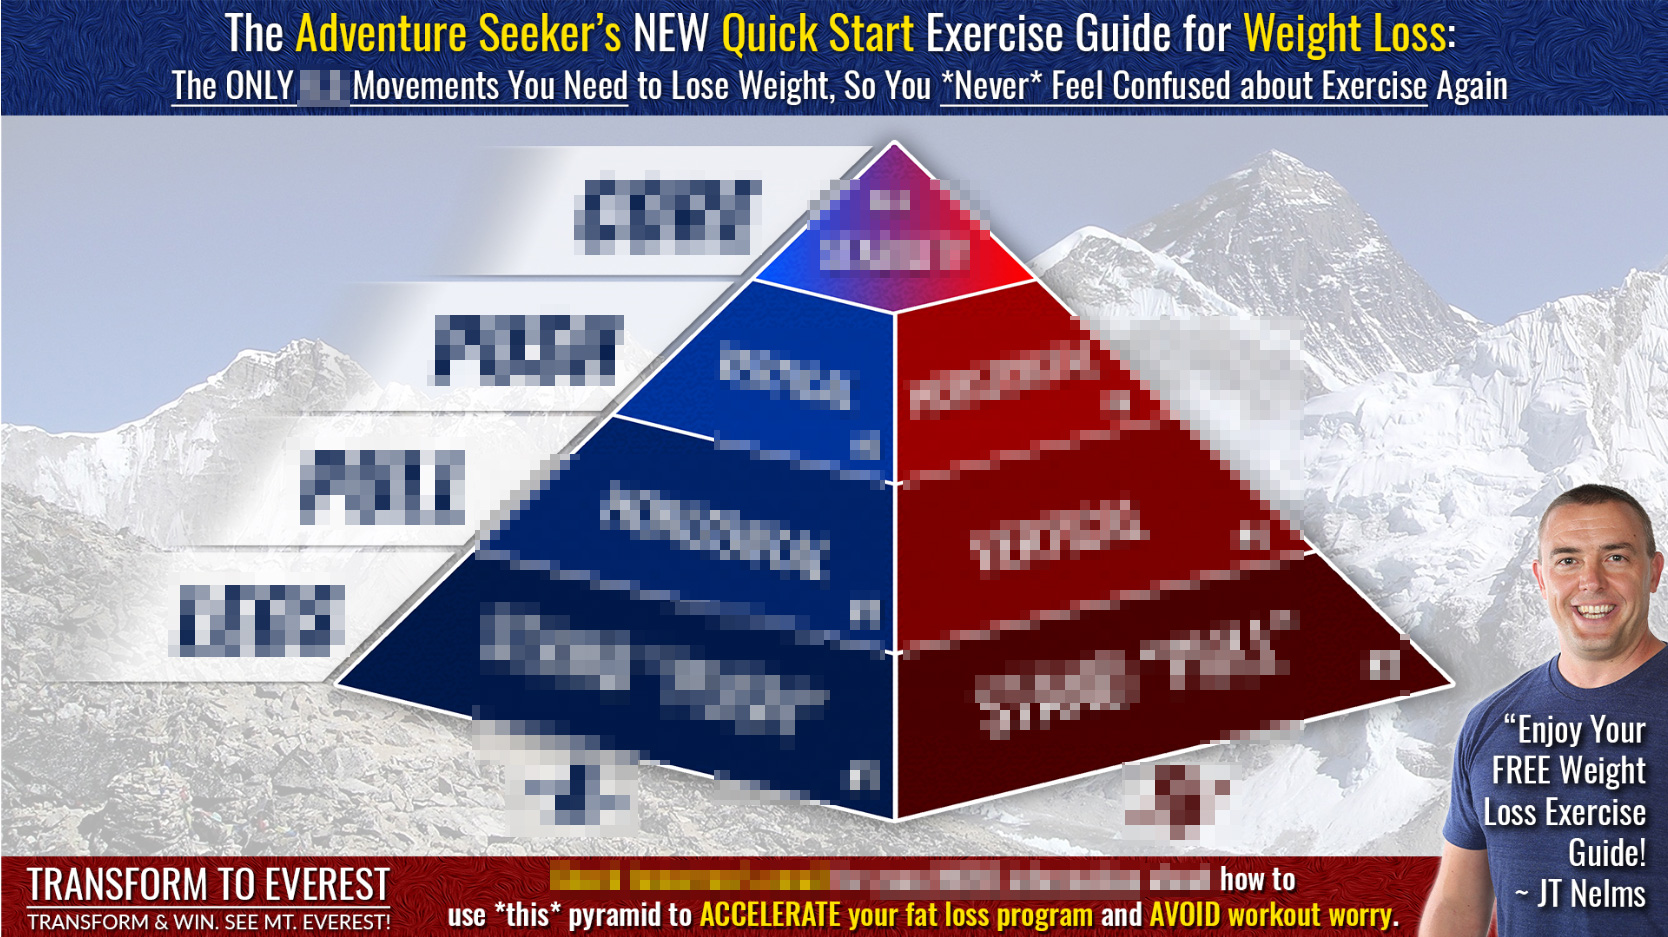 Blurred Exercise Pyramid